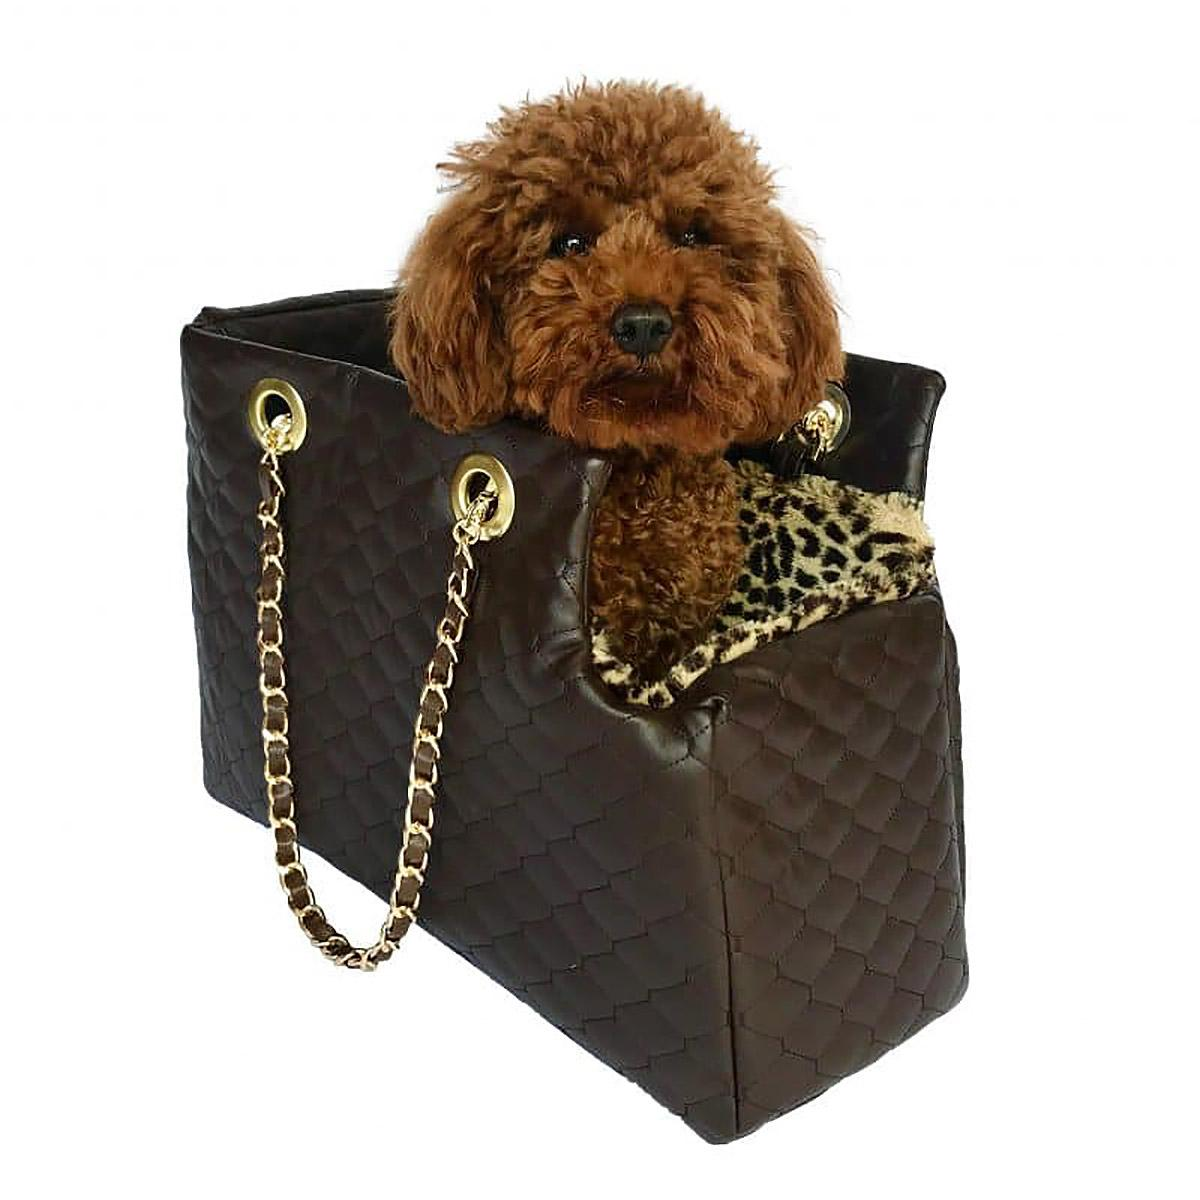 Kate Quilted Dog Carrier by The Dog Squad - Chocolate